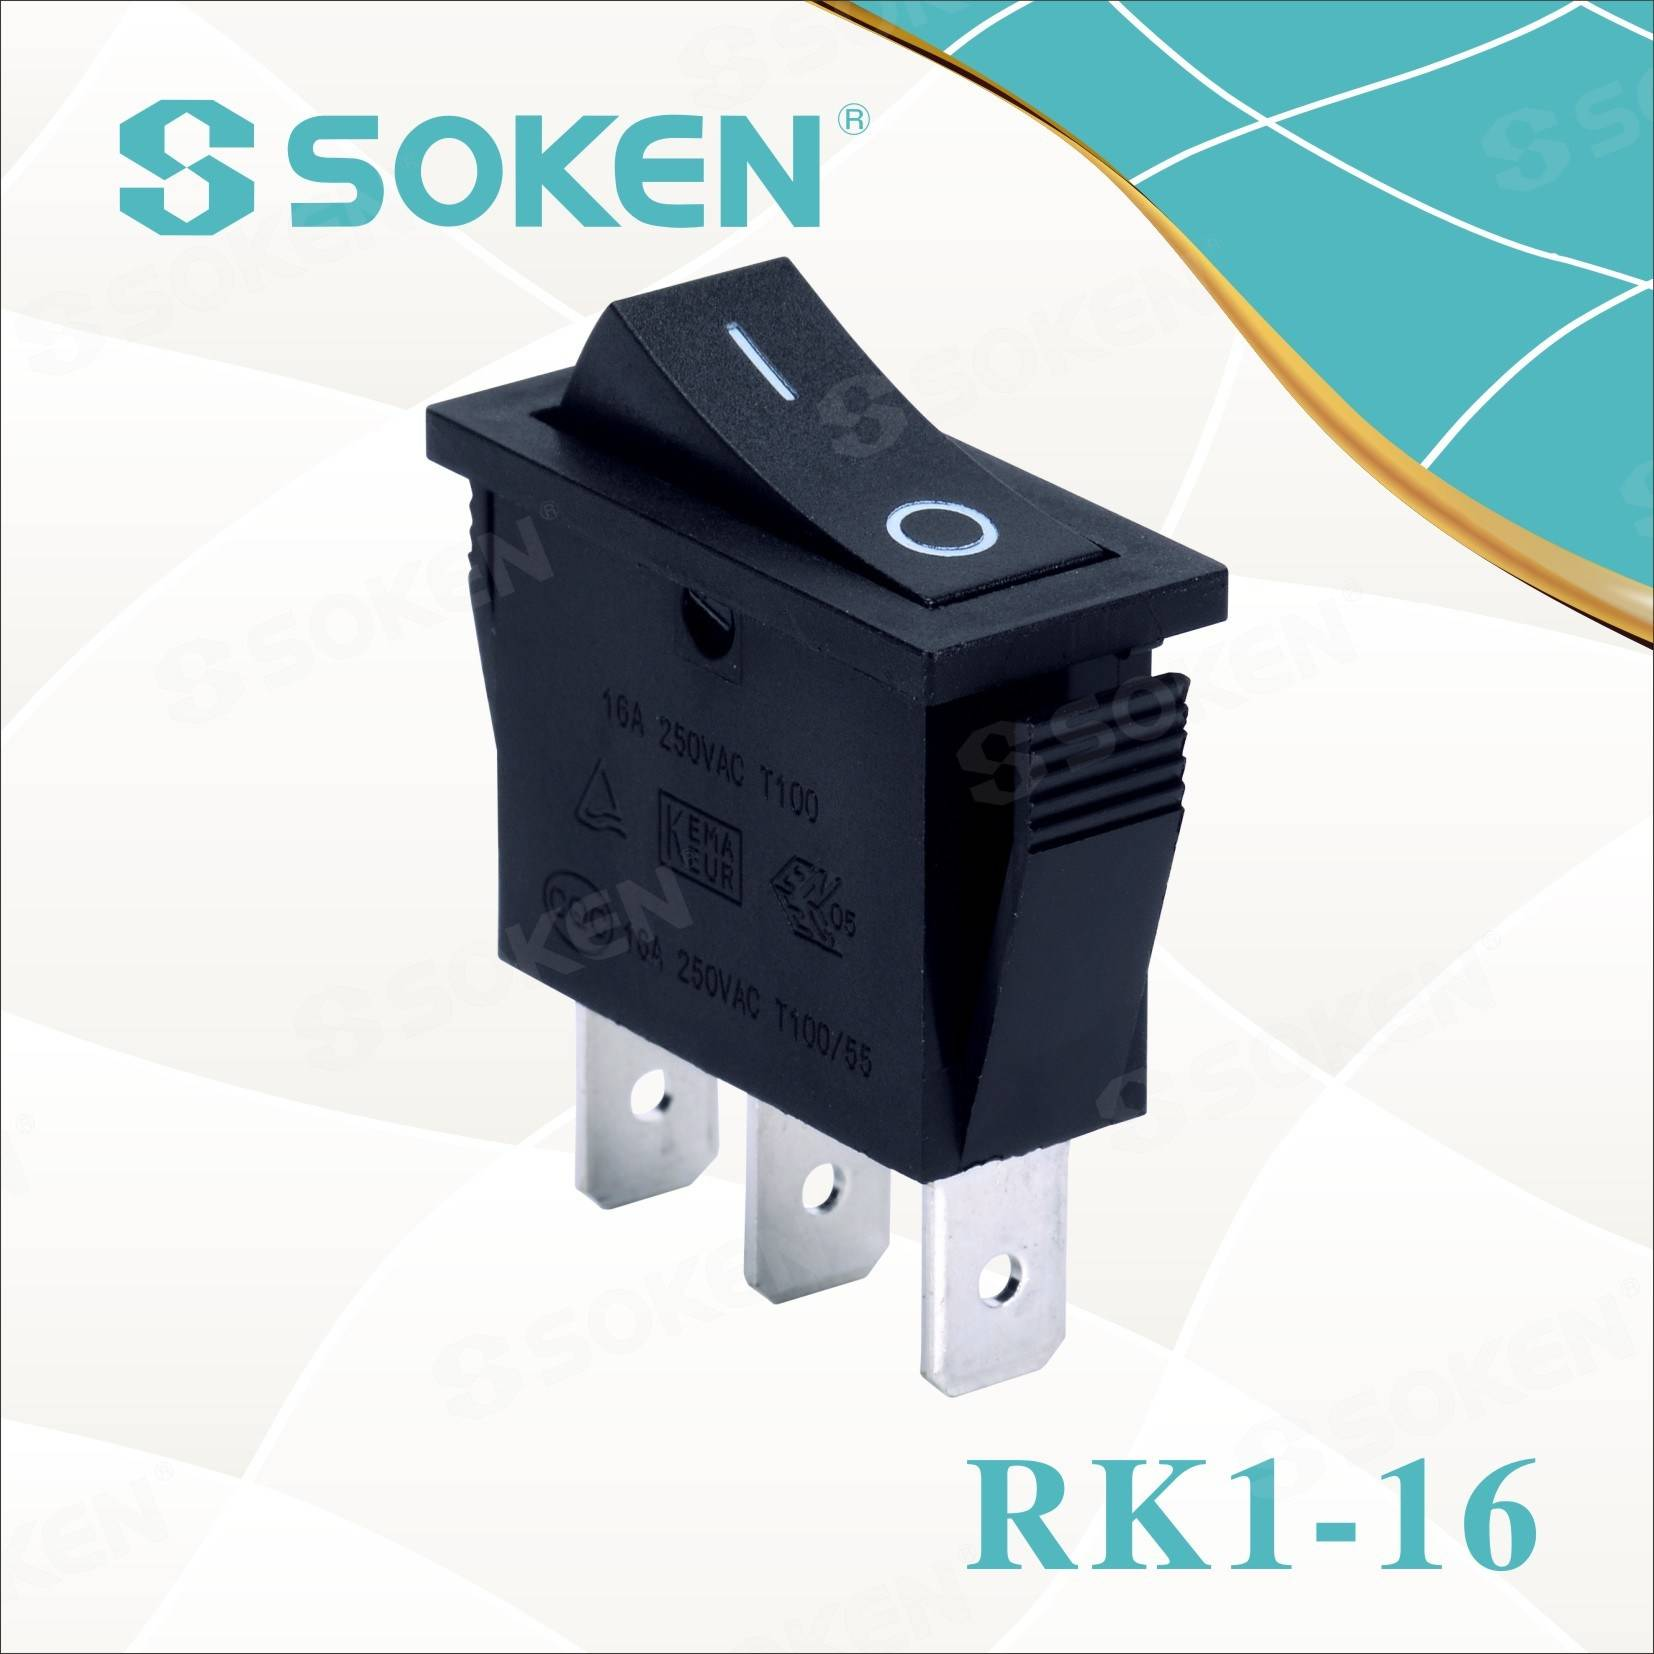 Soken Rk1-16 1x2 ar ar Rocker Switch